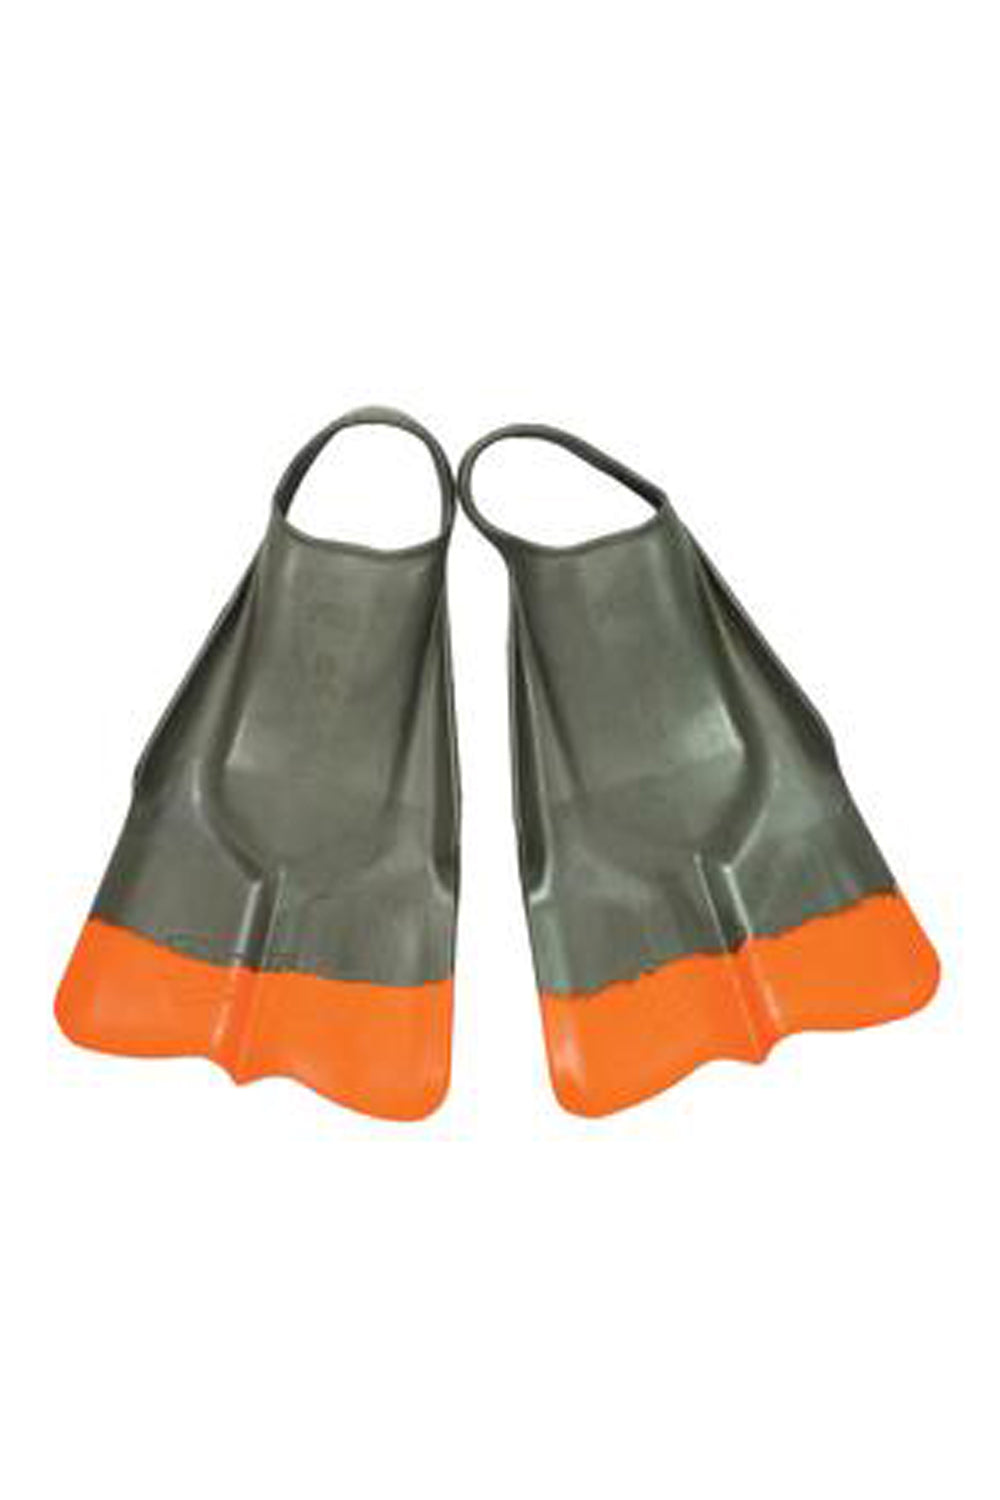 Da Fin Swimfins Flippers - Grey / Orange